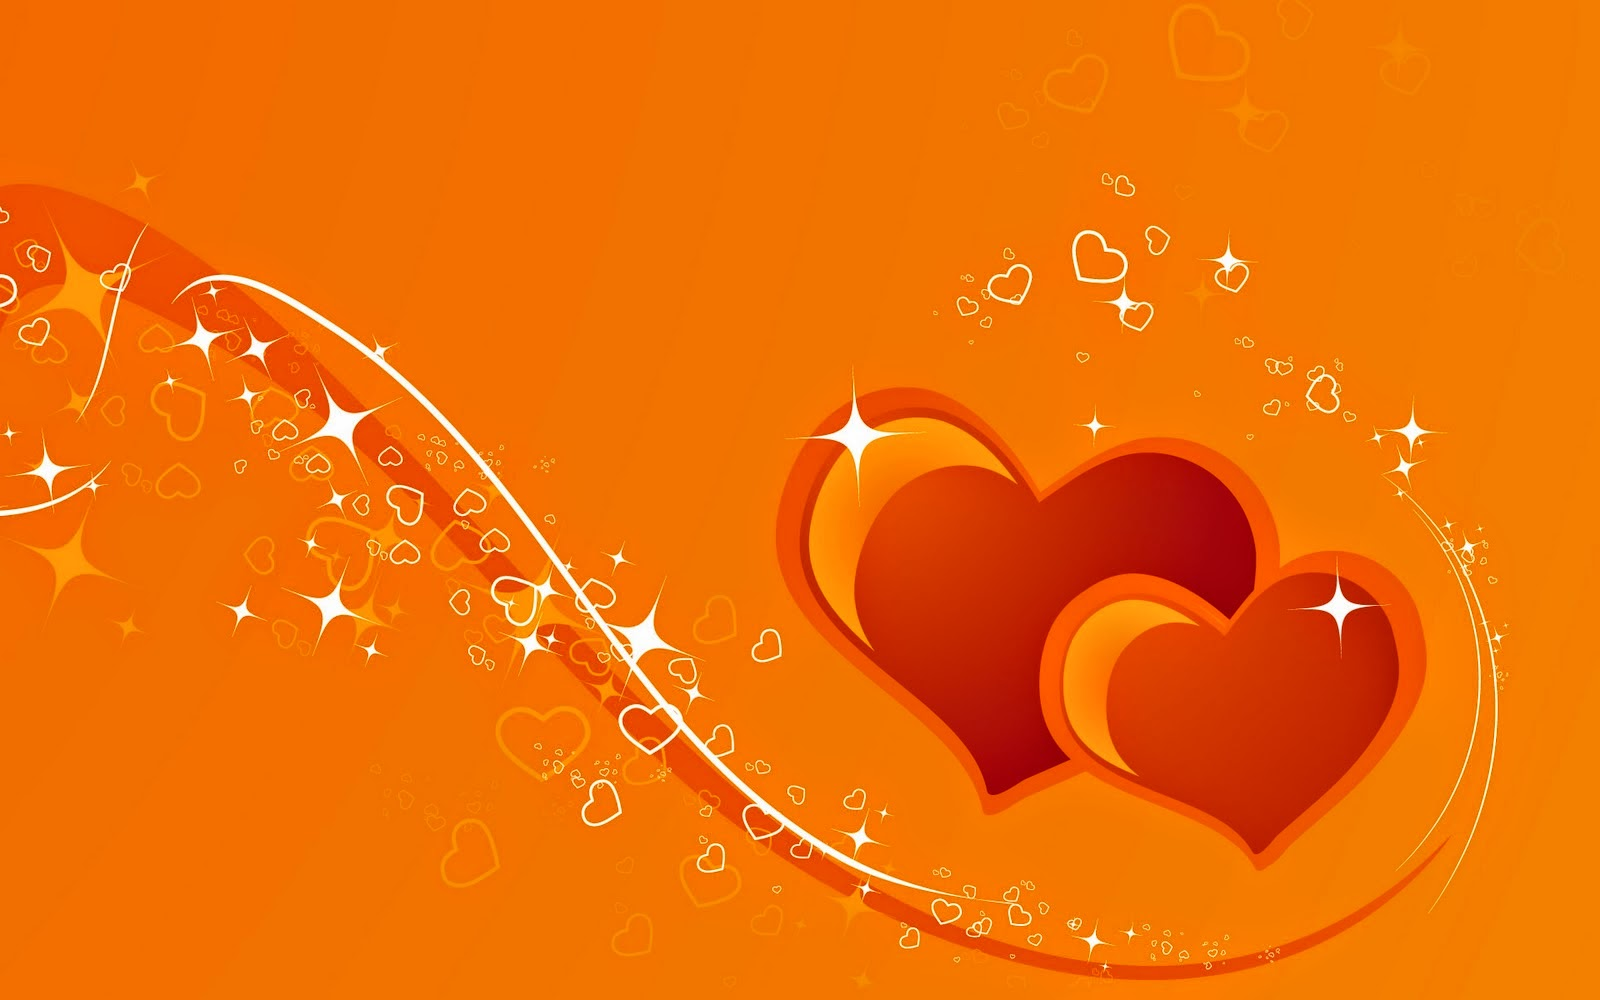 Vk Love Wallpapers : Free Wallpaper HD Orange For Pc - Zain Elhasany